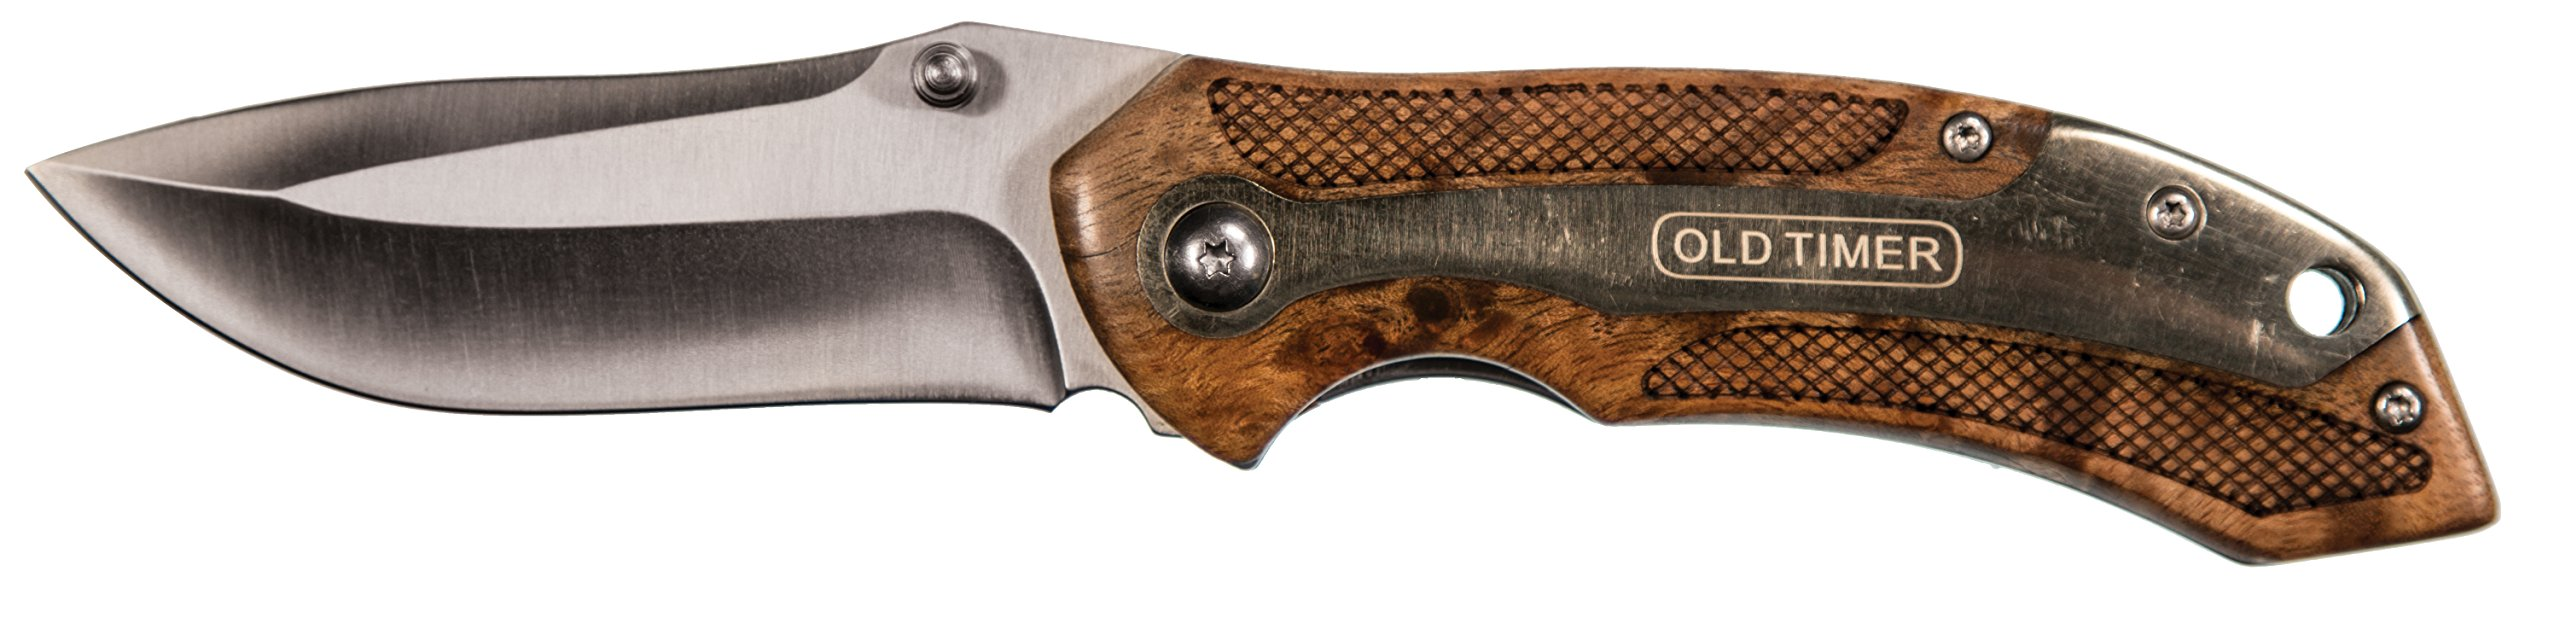 Old Timer 901OT 7.32in Stainless Steel Assisted Opening Knife with 2.9in Drop Point Blade and Ironwood Handle for Outdoor Hunting Camping and Everyday Carry